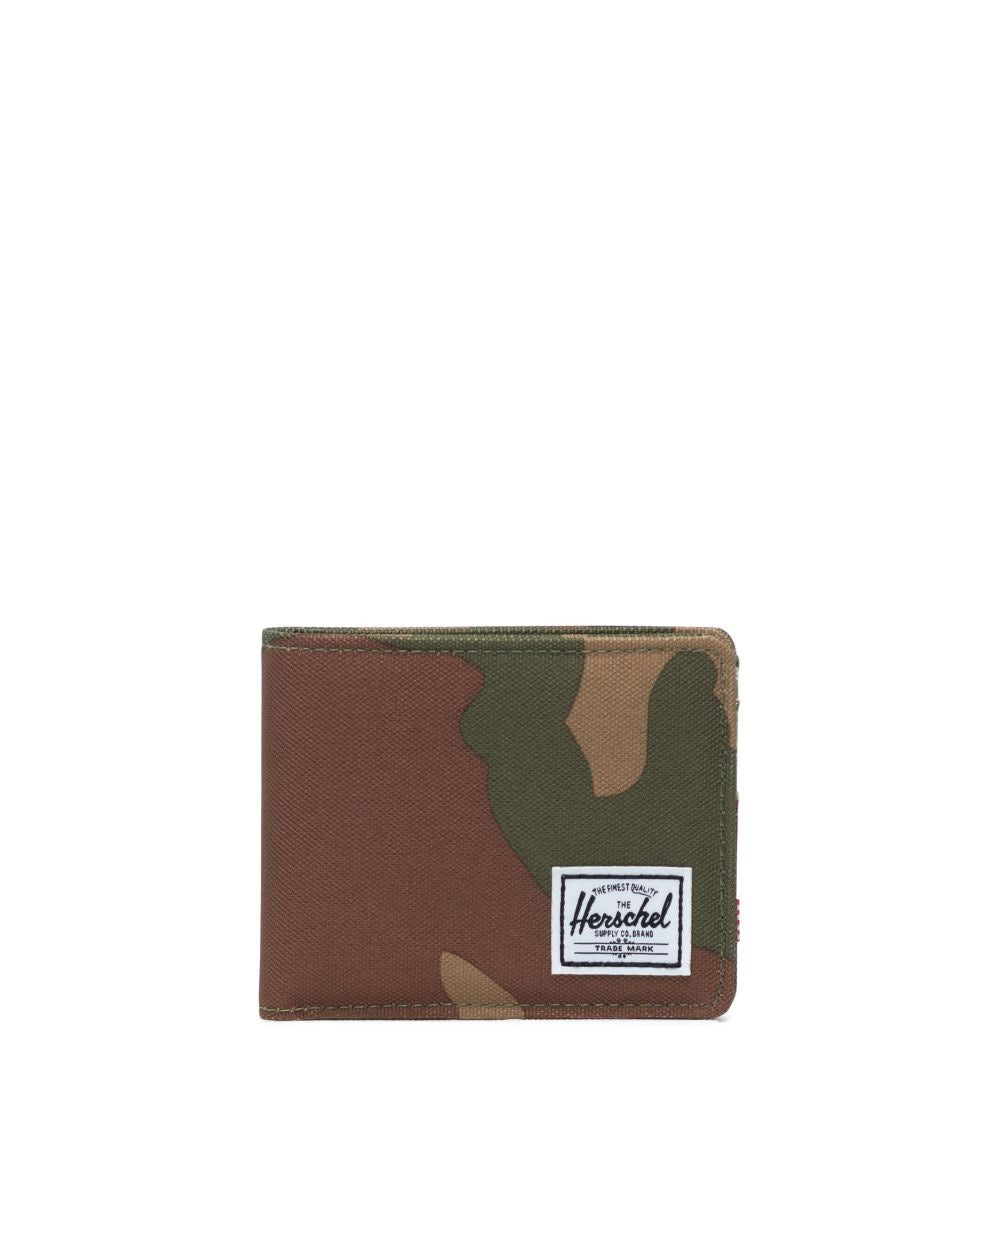 HERSCHEL - ROY WALLET IN WOODLAND CAMO